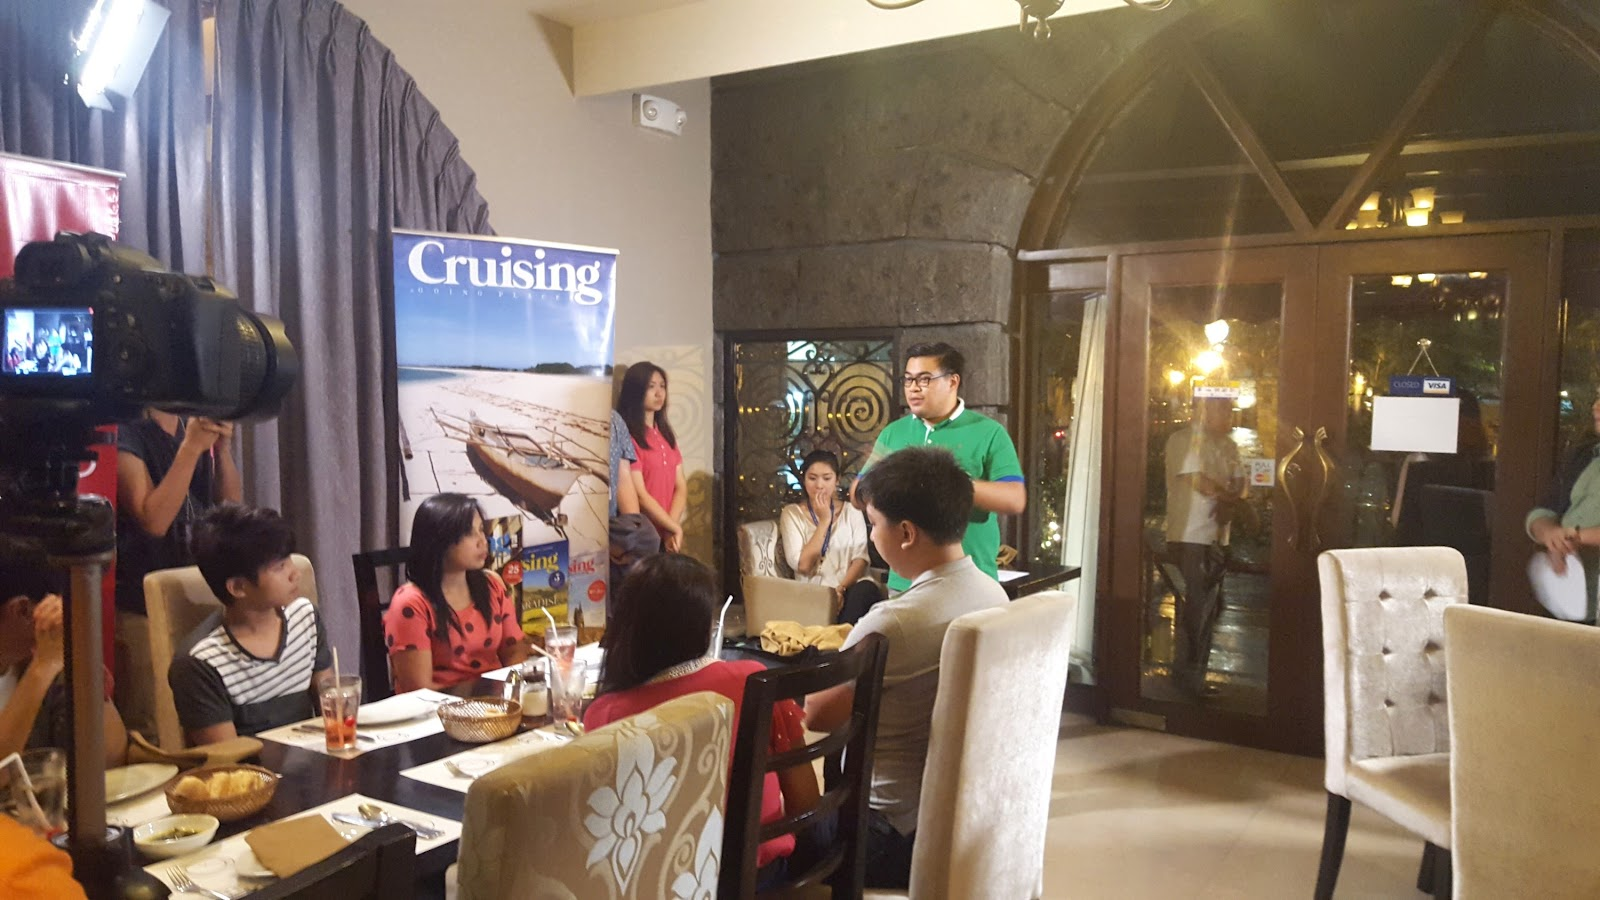 Where Zomato And Cruising Will Visit 16 Restaurants That Represents Cuisines From Different Countries Without Leaving Metro Manila